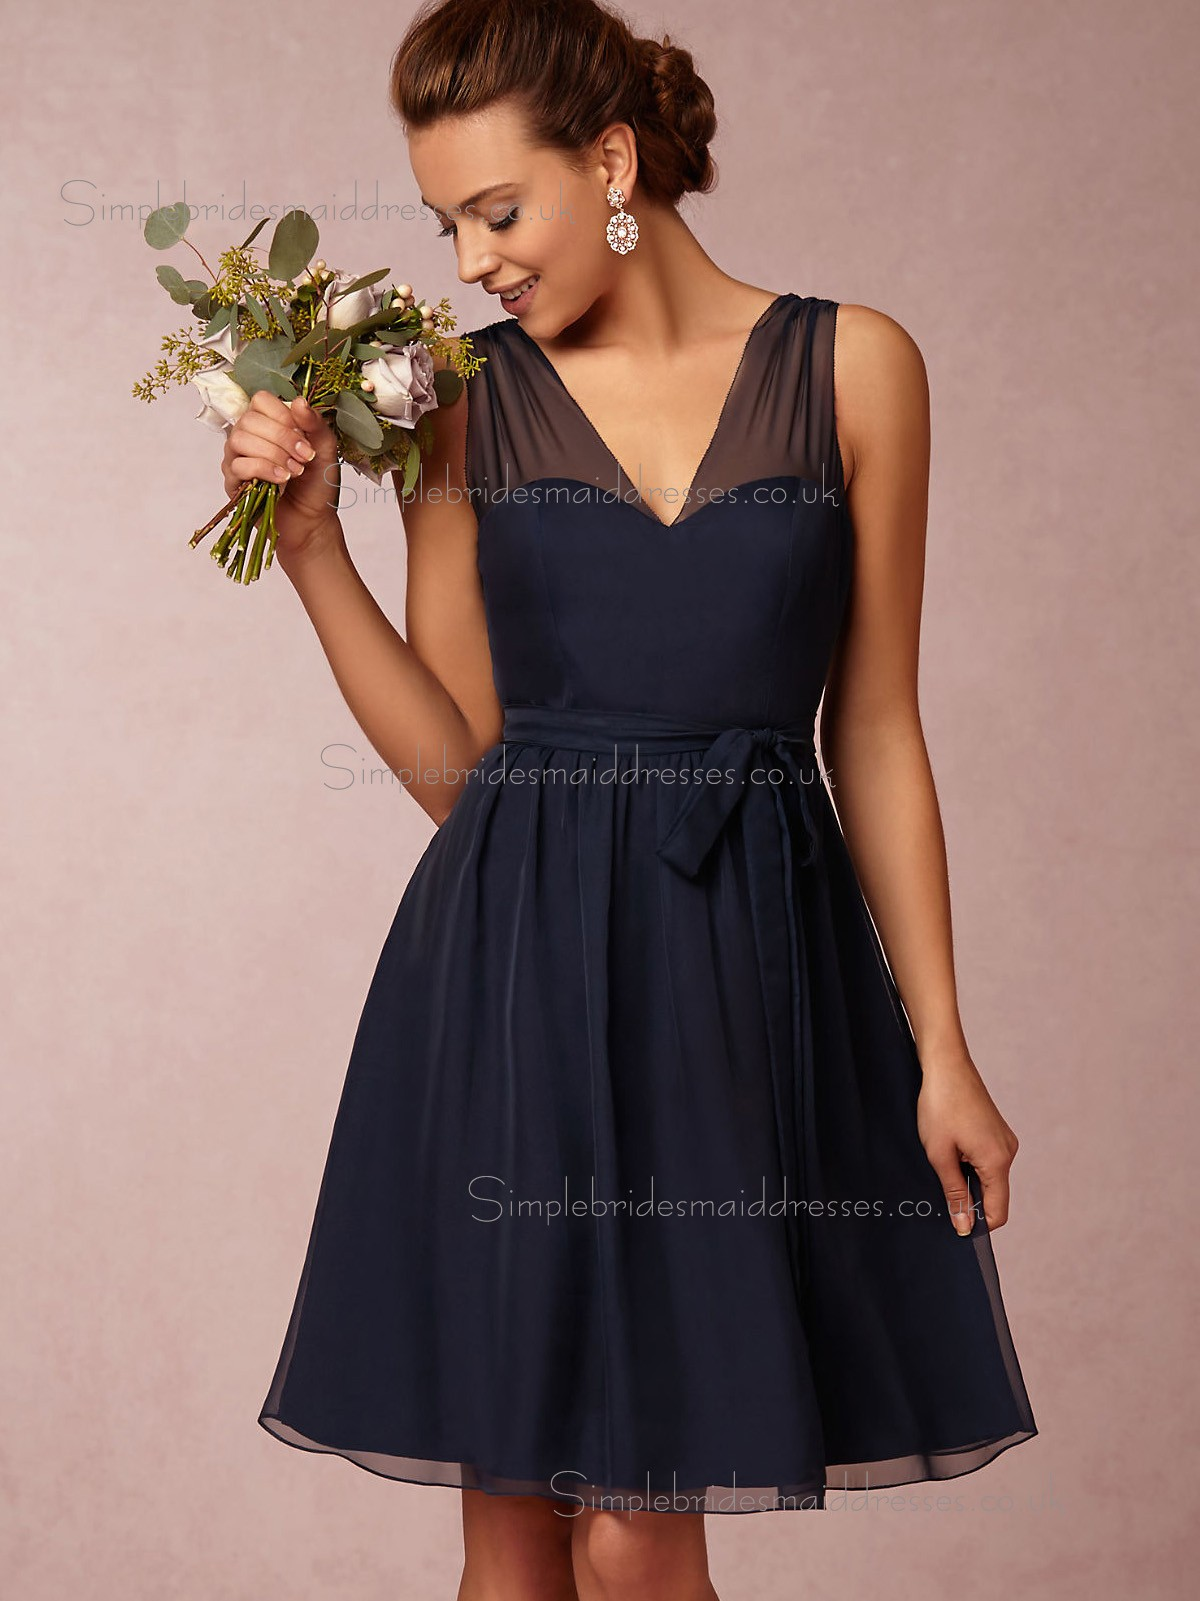 Bud Chiffon Dark Navy Short length Belt Bridesmaid